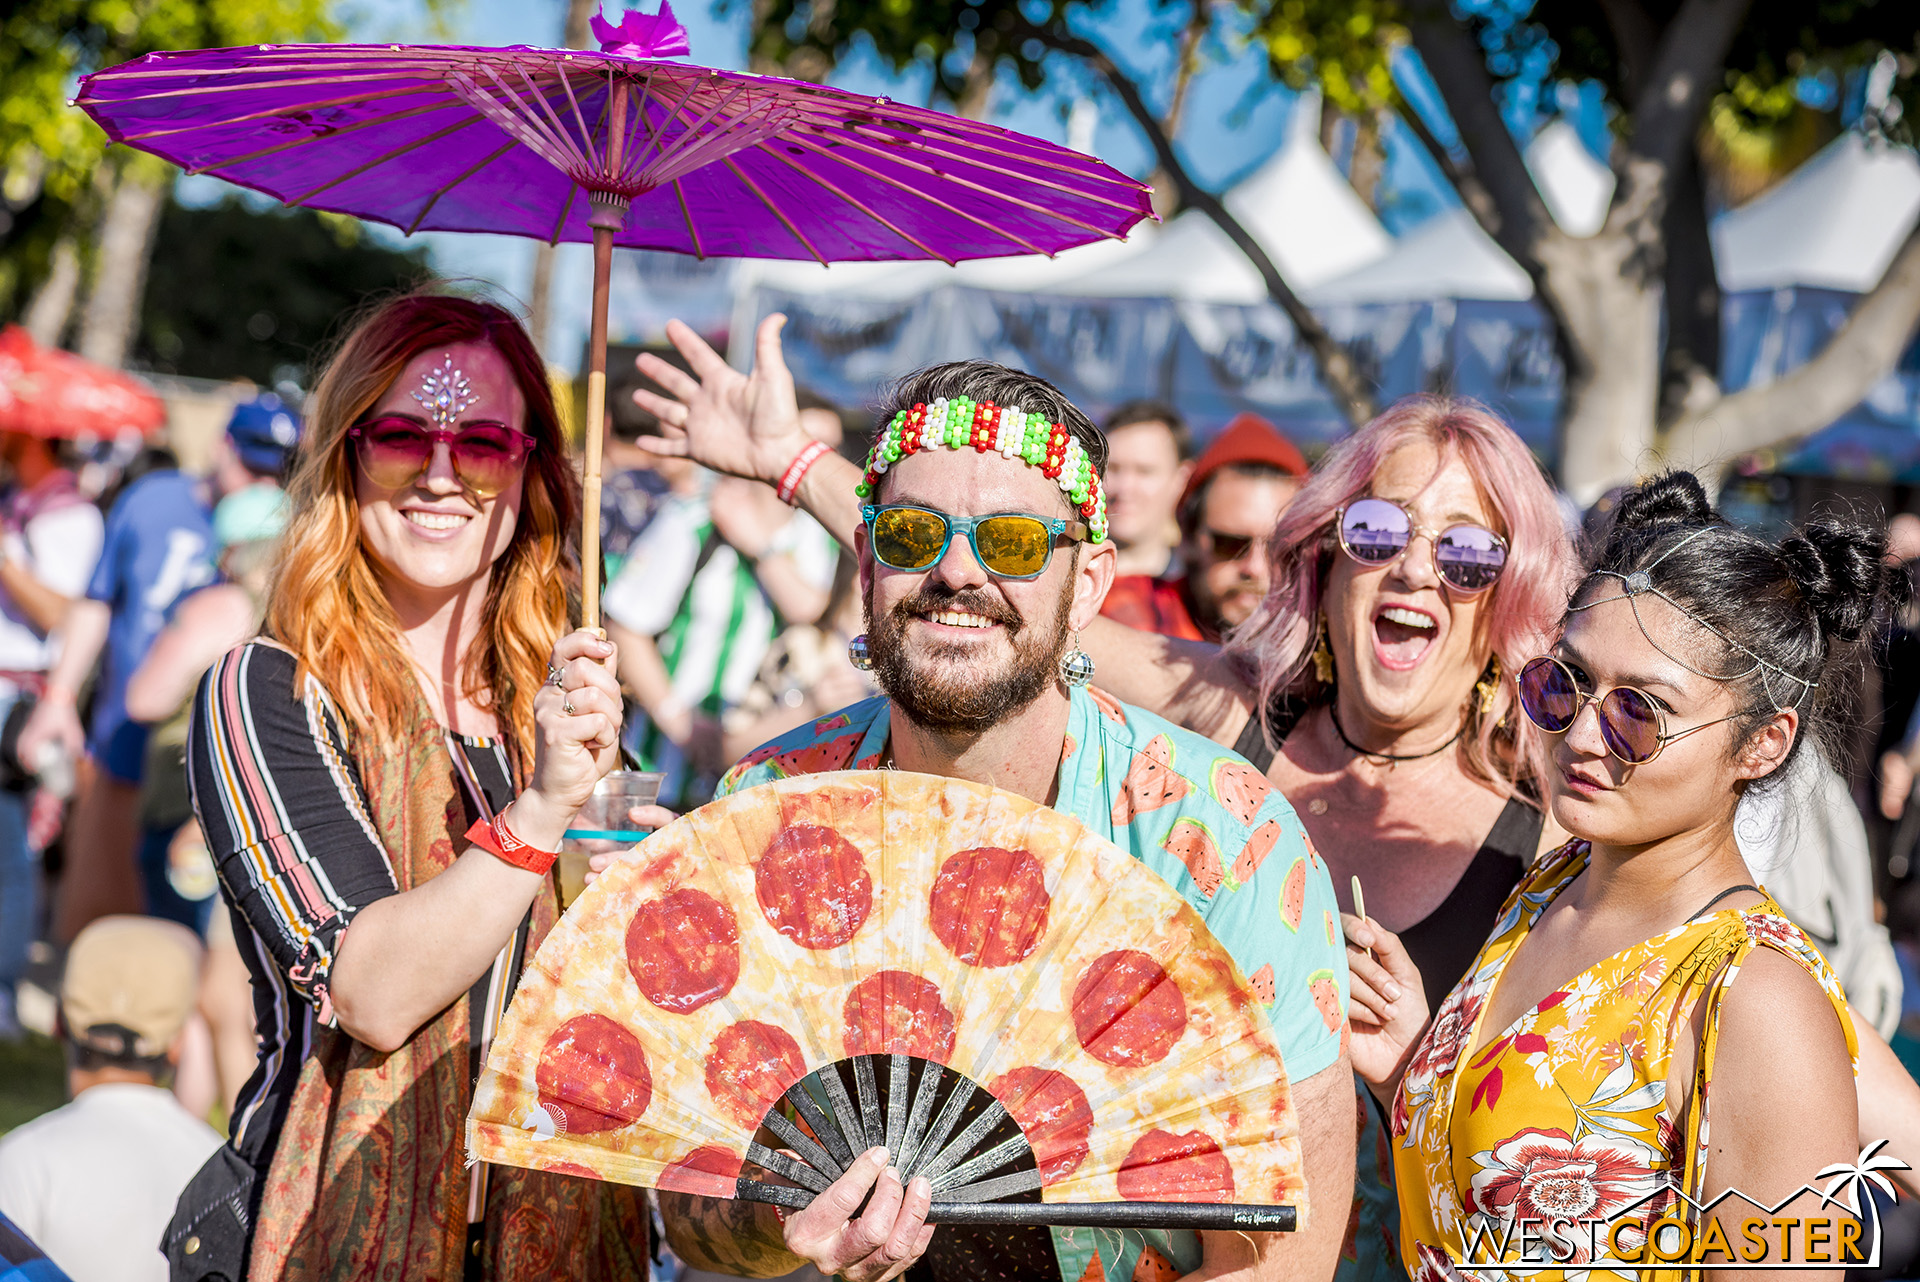 As close to a Coachella group as I could find… love the pizza fan.